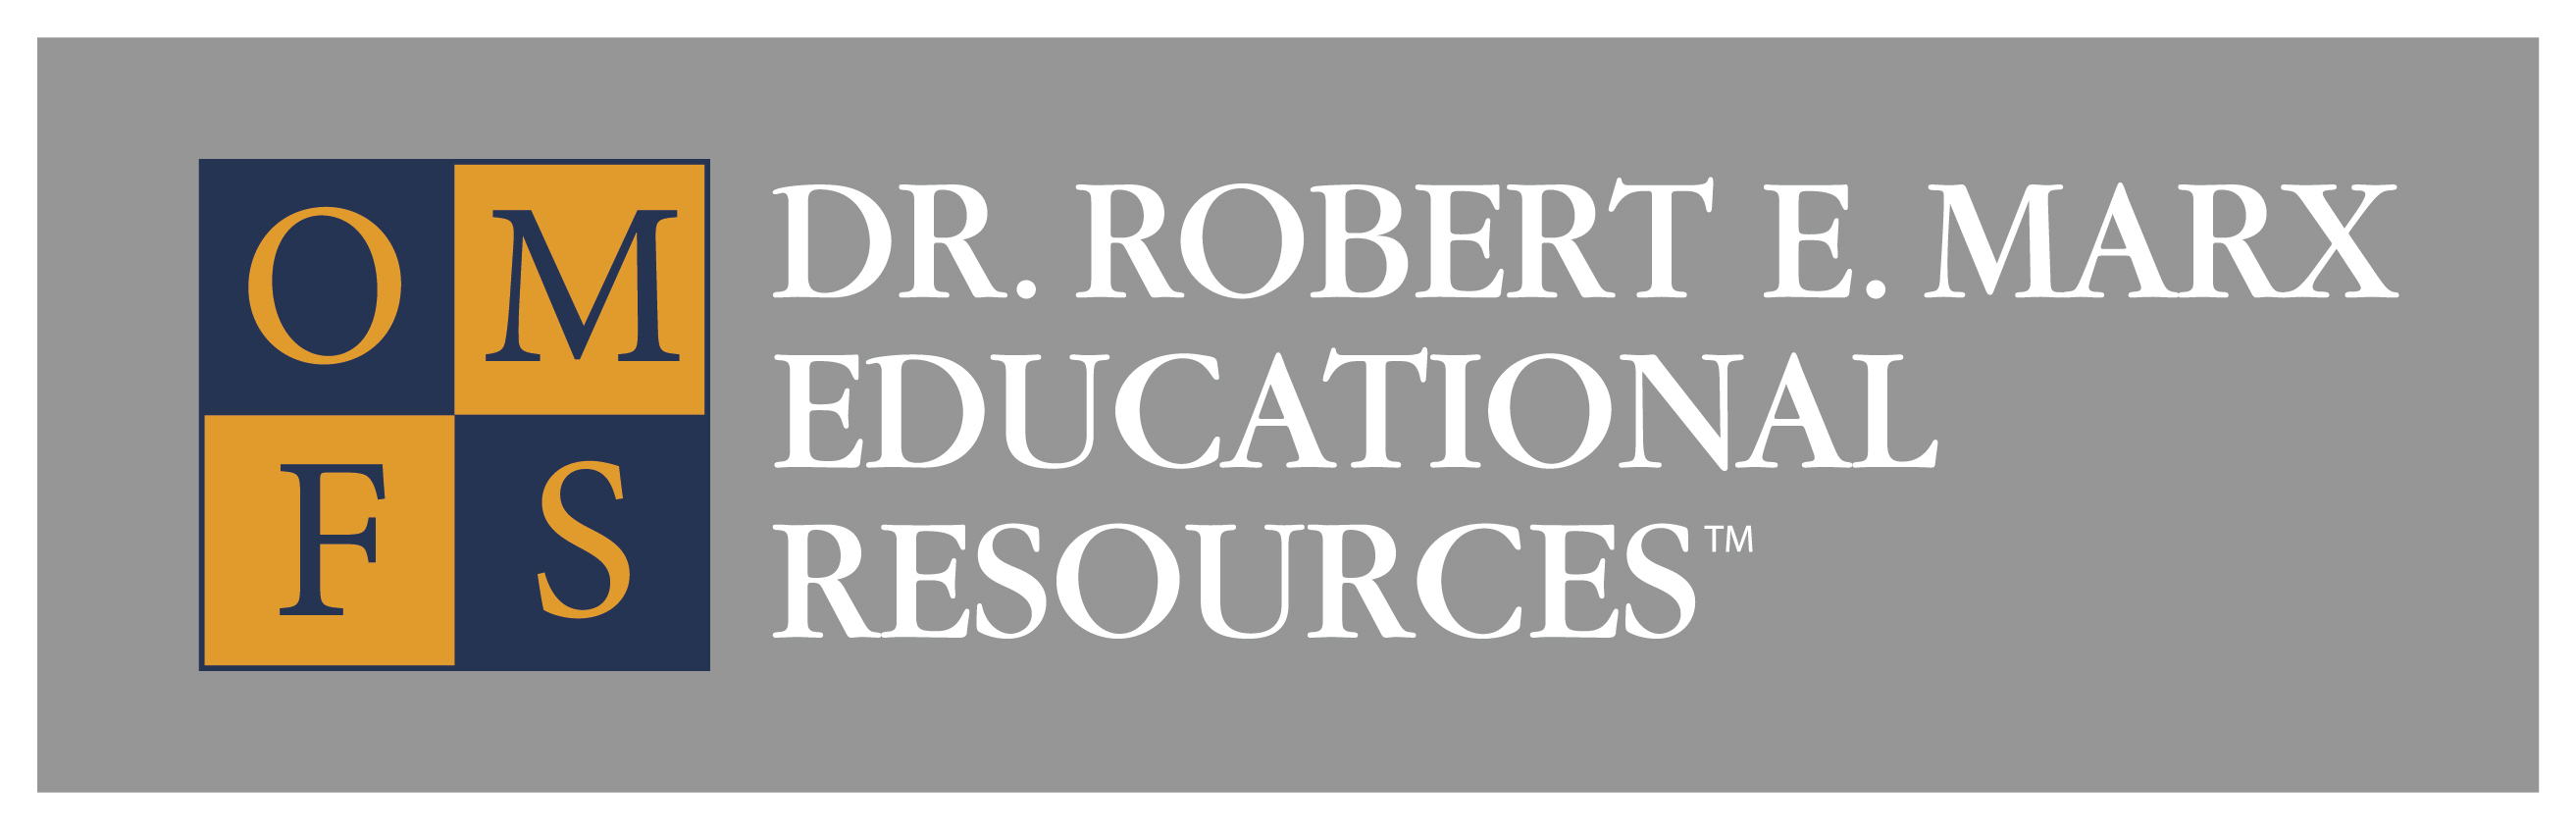 Dr. Robert E. Marx Educational Resources